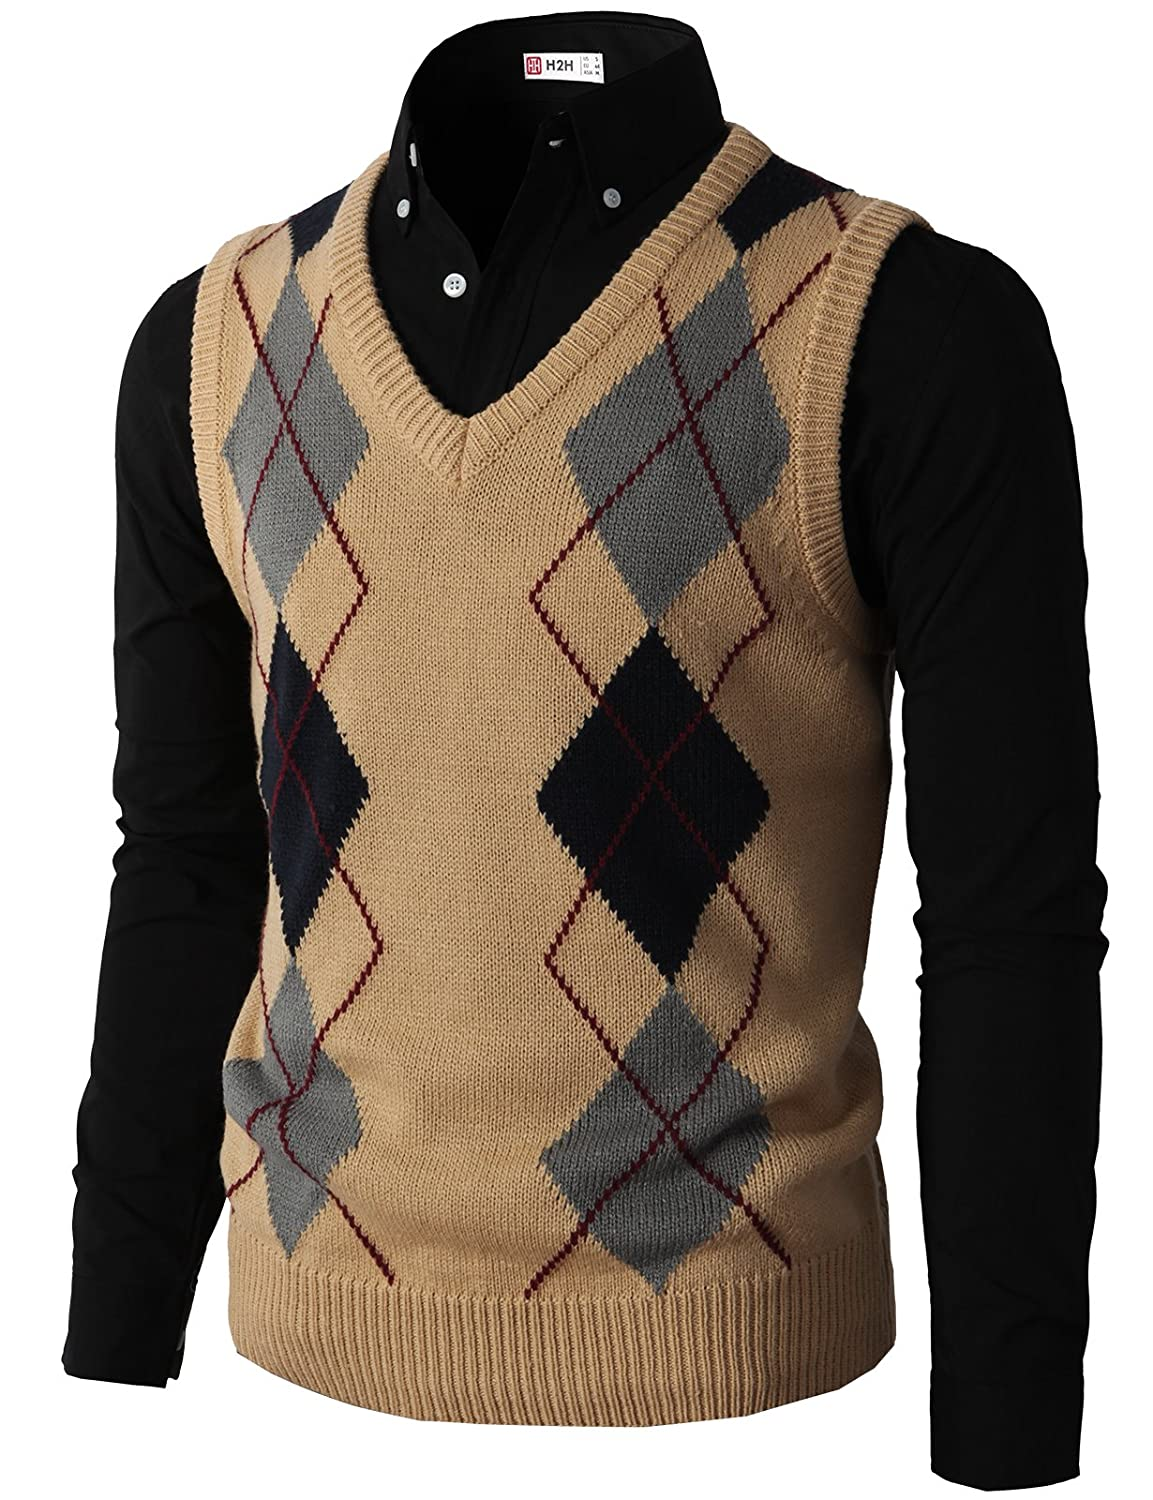 Men's Vintage Workwear – 1920s, 1930s, 1940s, 1950s H2H Mens Casual Slim Fit Argyle V-Neck Golf Sweater Vest Of Various Colors $29.70 AT vintagedancer.com